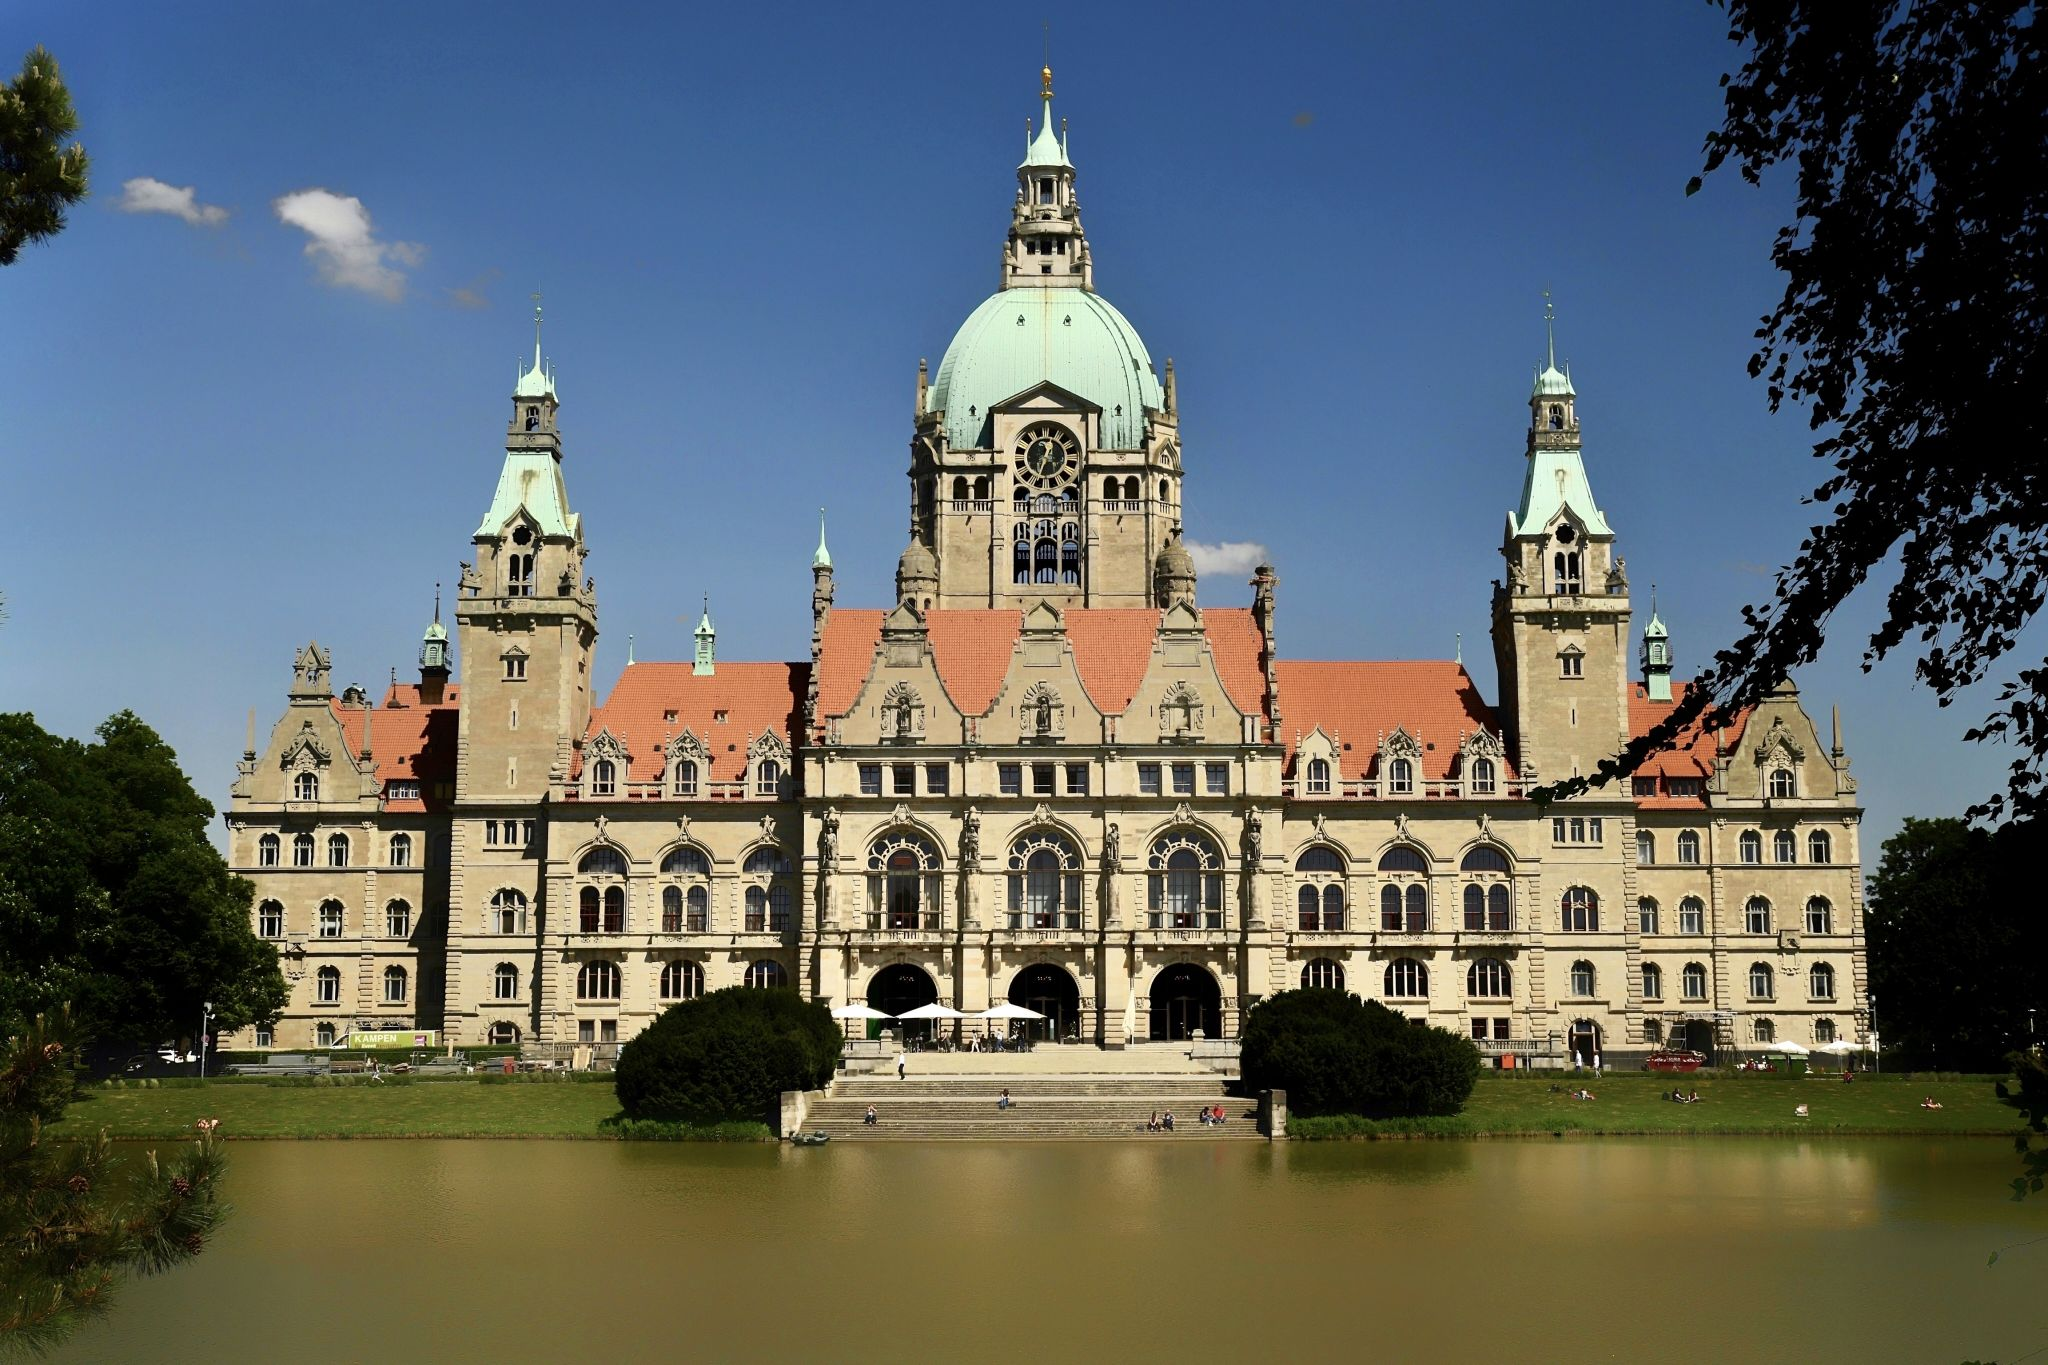 New Town Hall Hannover, Germany